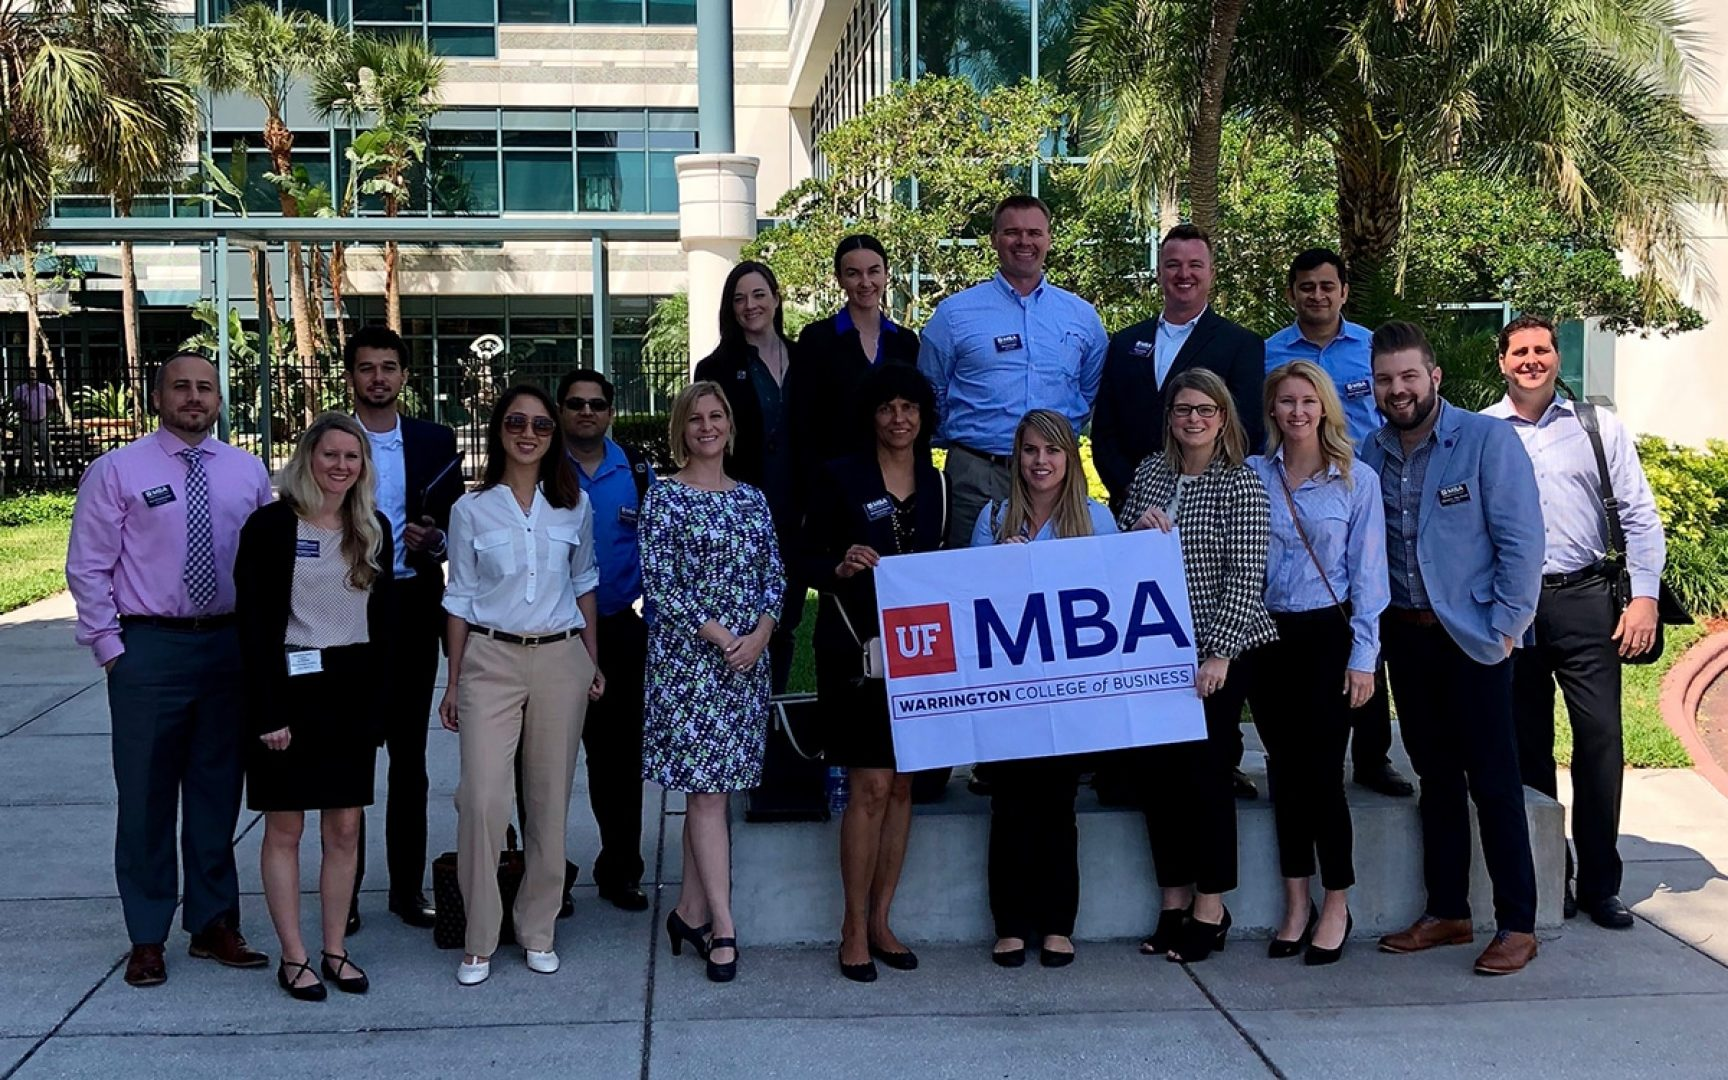 Students and staff from the UF MBA program pose for a photo outside of the Raymond James offices while holding a UF MBA banner